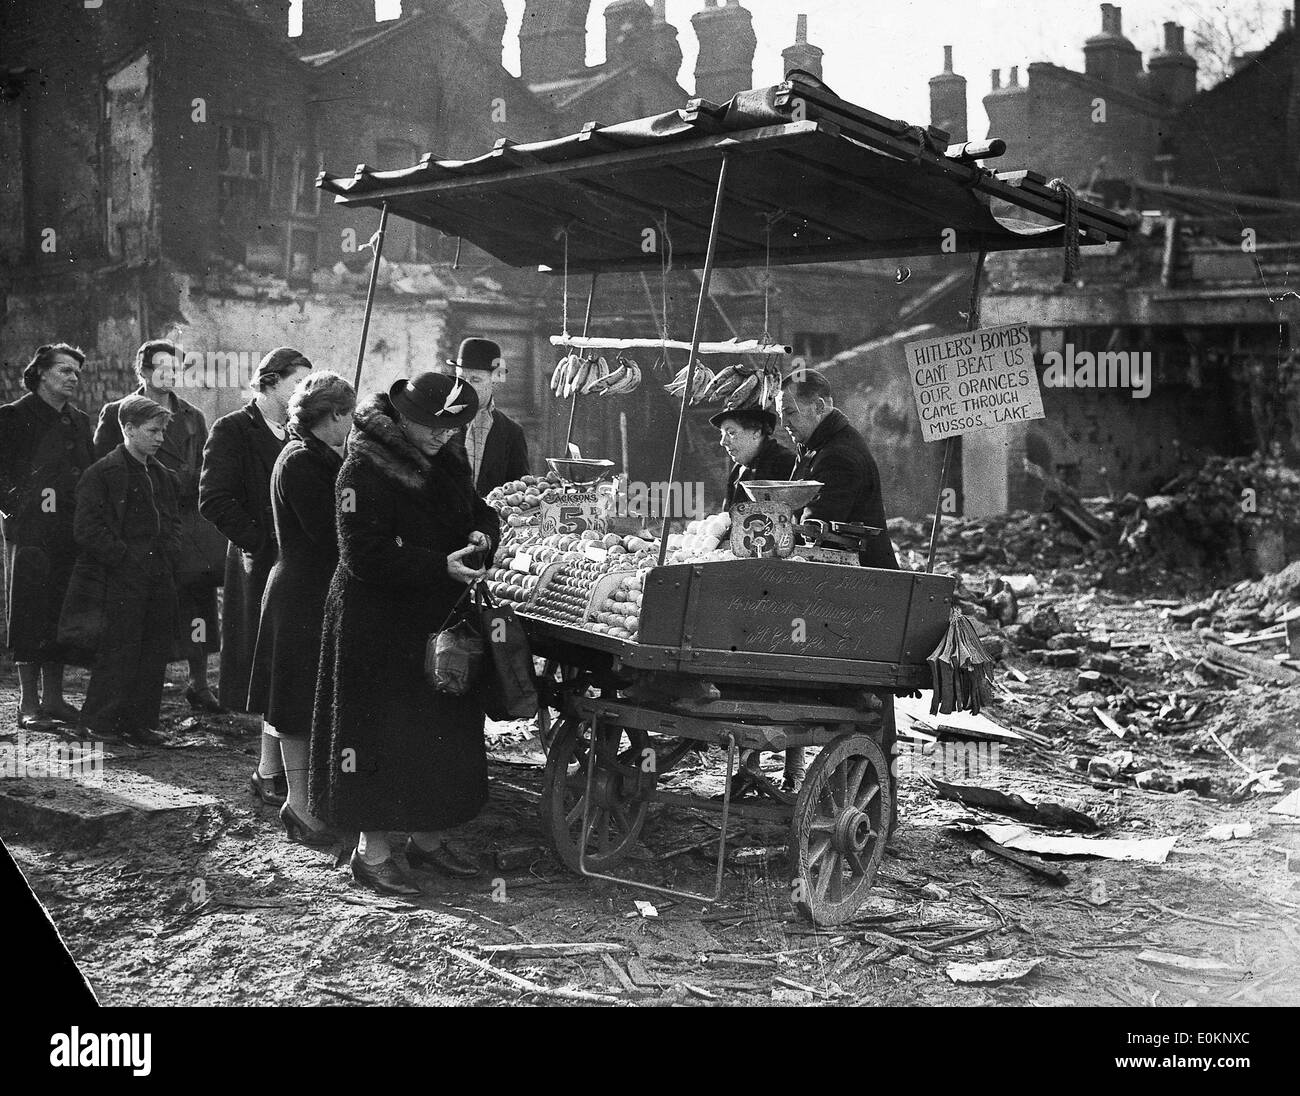 People buying food from a street cart among wreckage from the Blitz - Stock Image